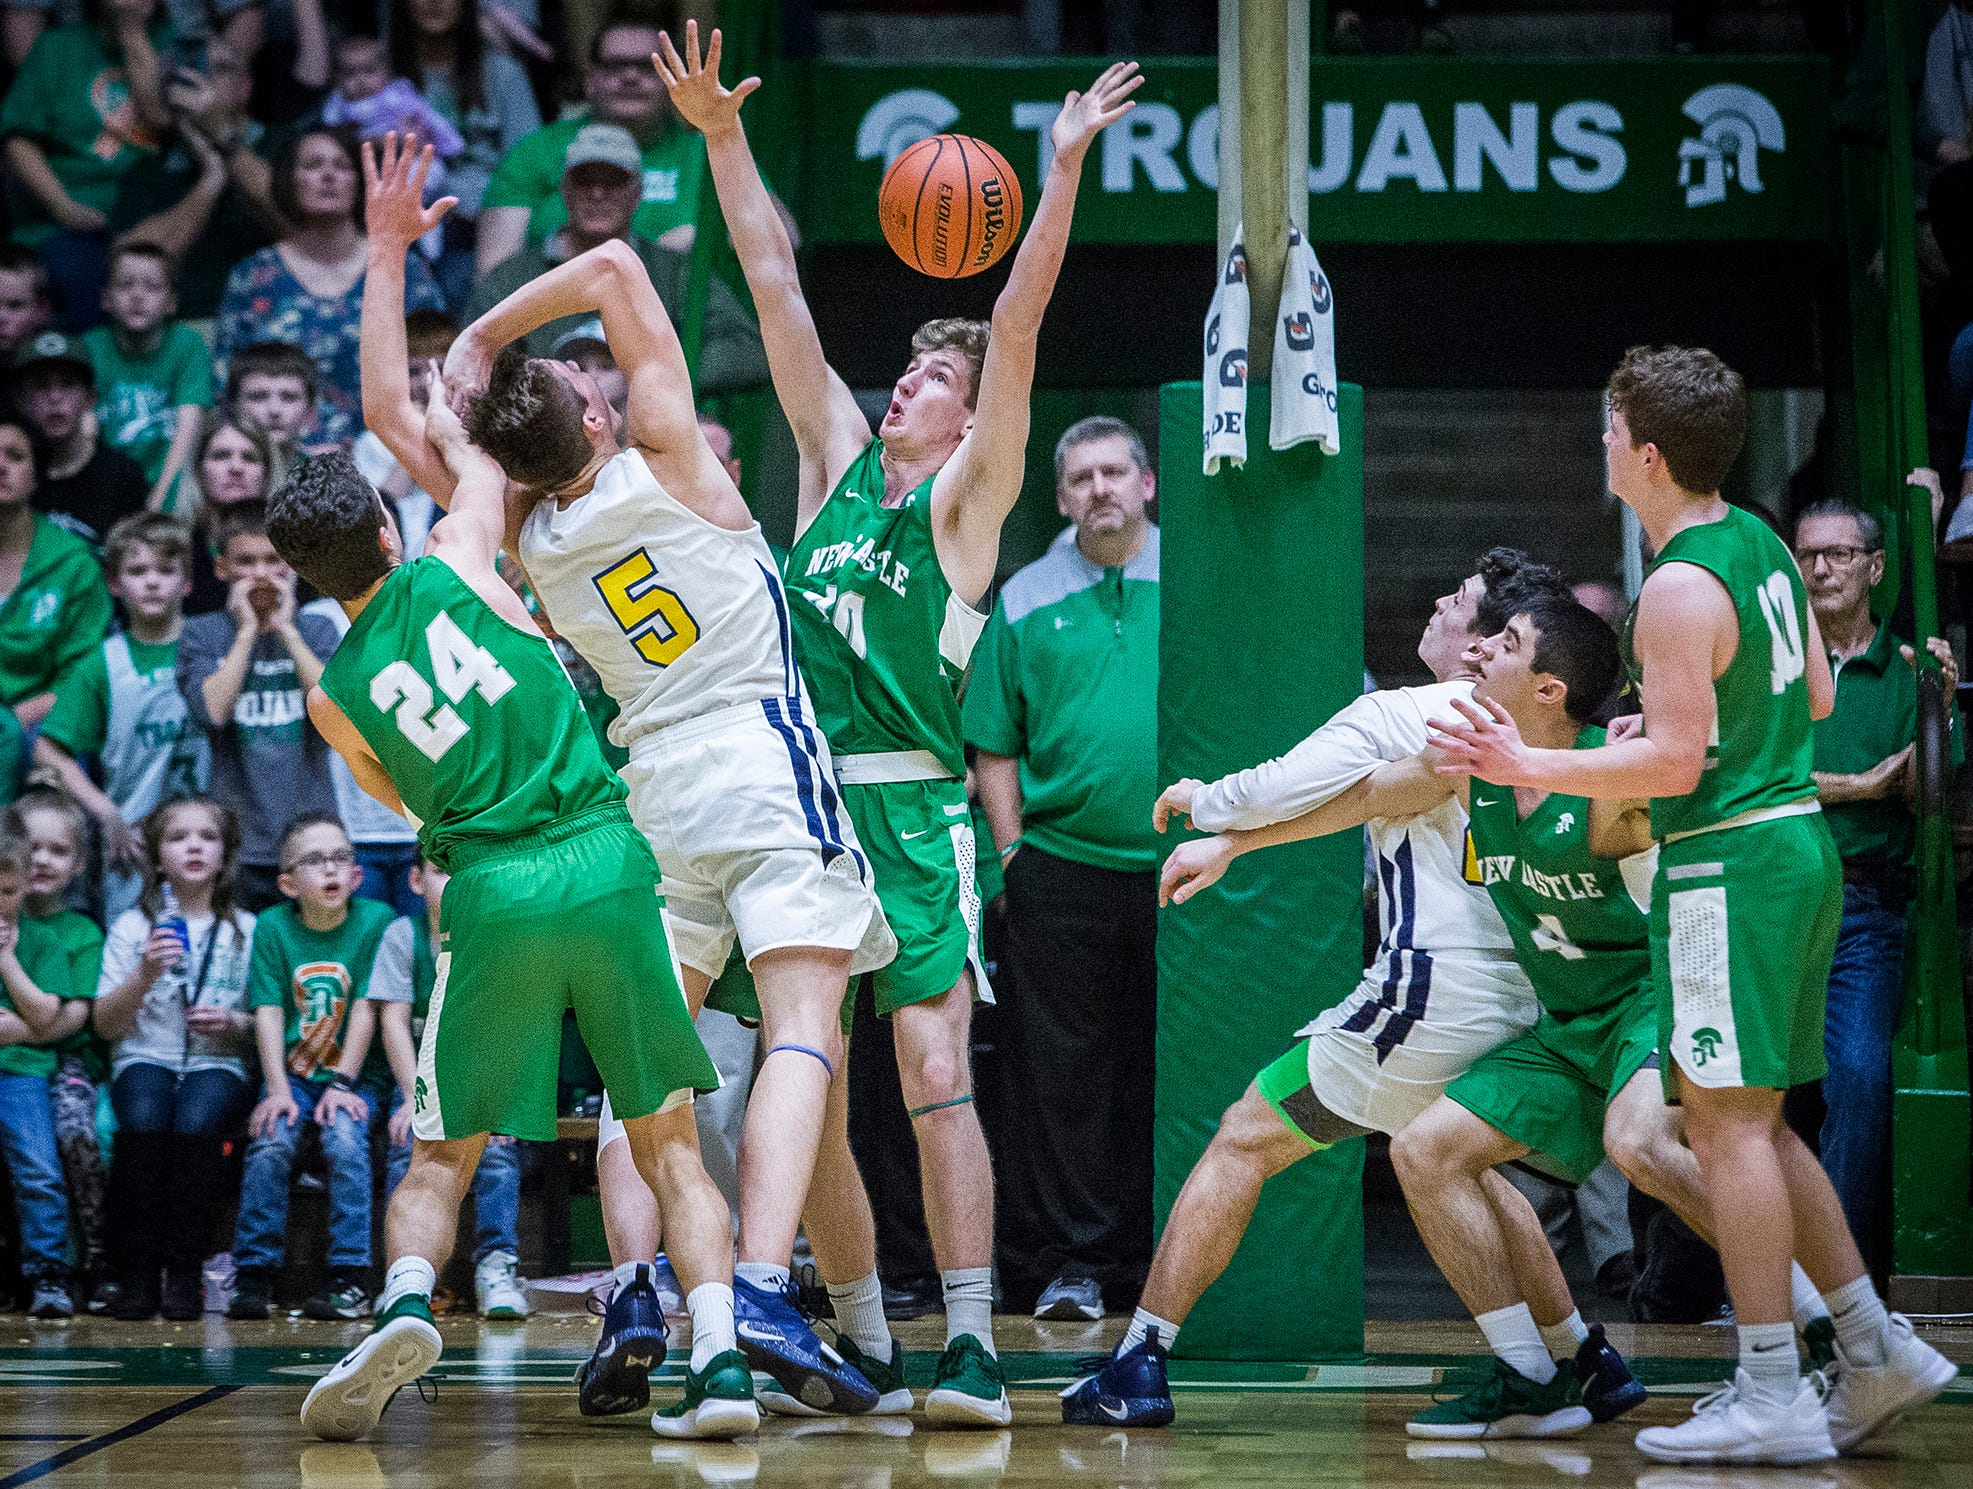 Delta defeated New Castle 59-55 in their sectional championship game at New Castle High School Saturday, March 2, 2019.